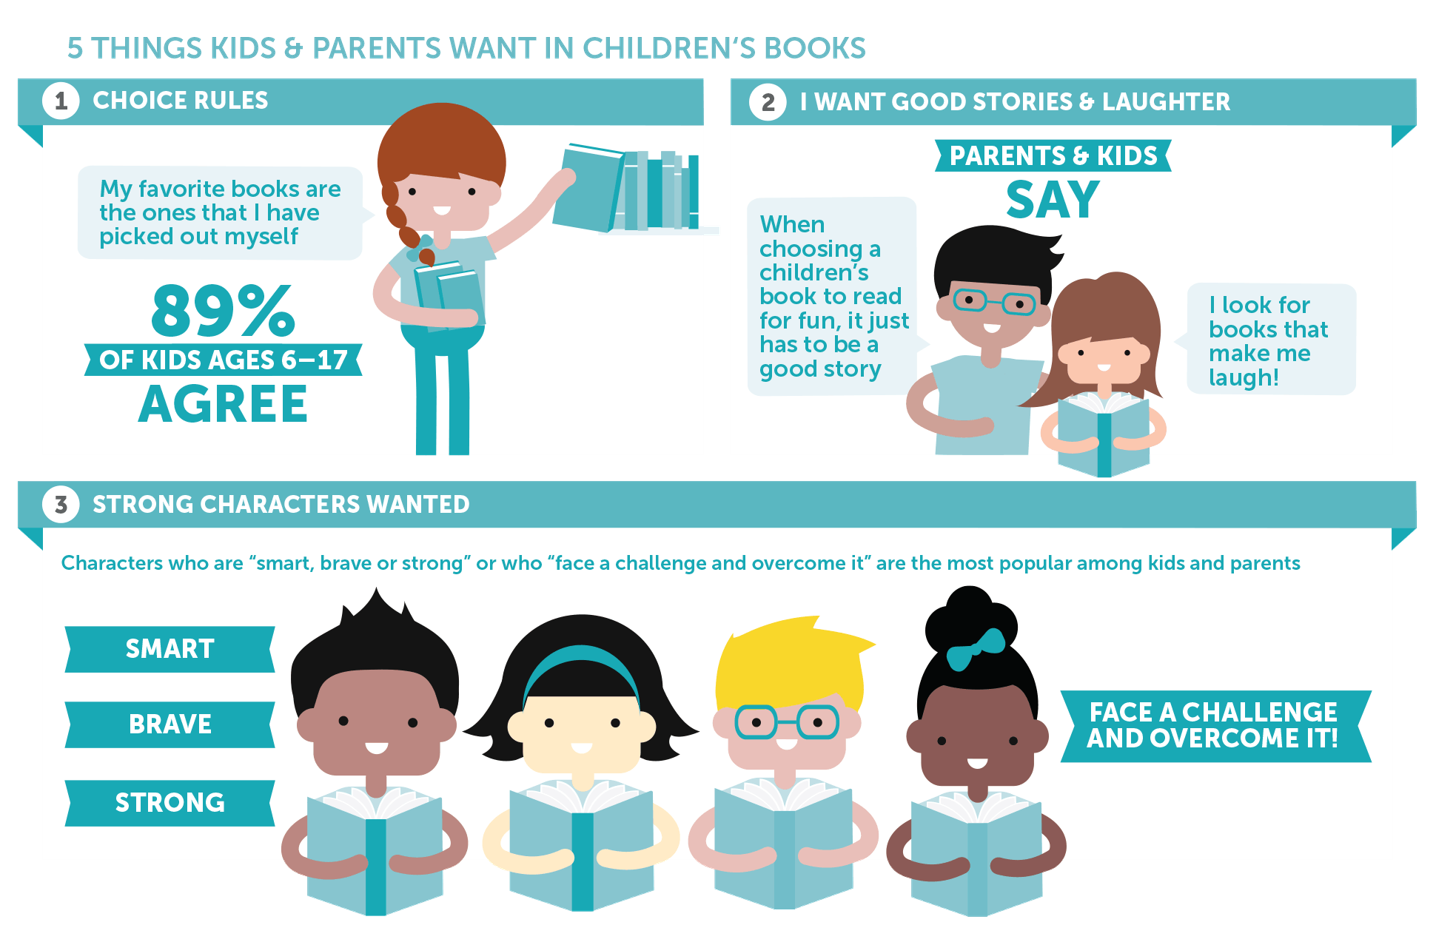 Download the Kids and Family Reading Report: https://t.co/ns6Y13C2vz #ReadingSummit https://t.co/pO7HJLG6QY